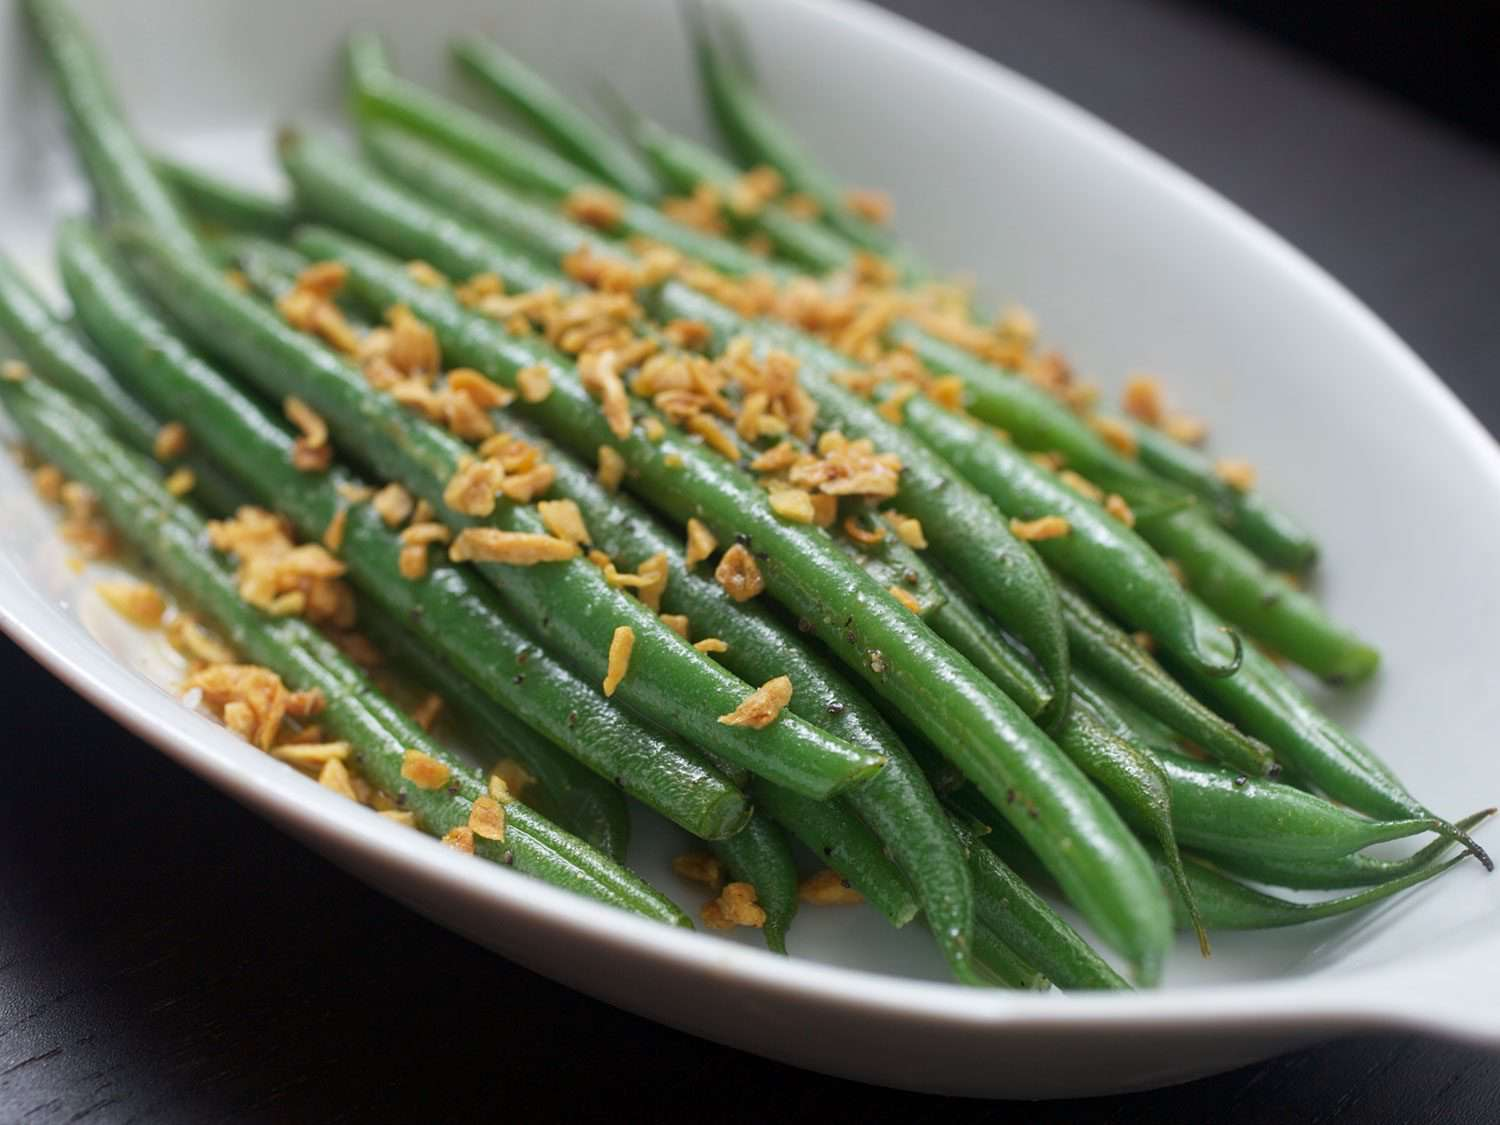 Green beans in serving dish.